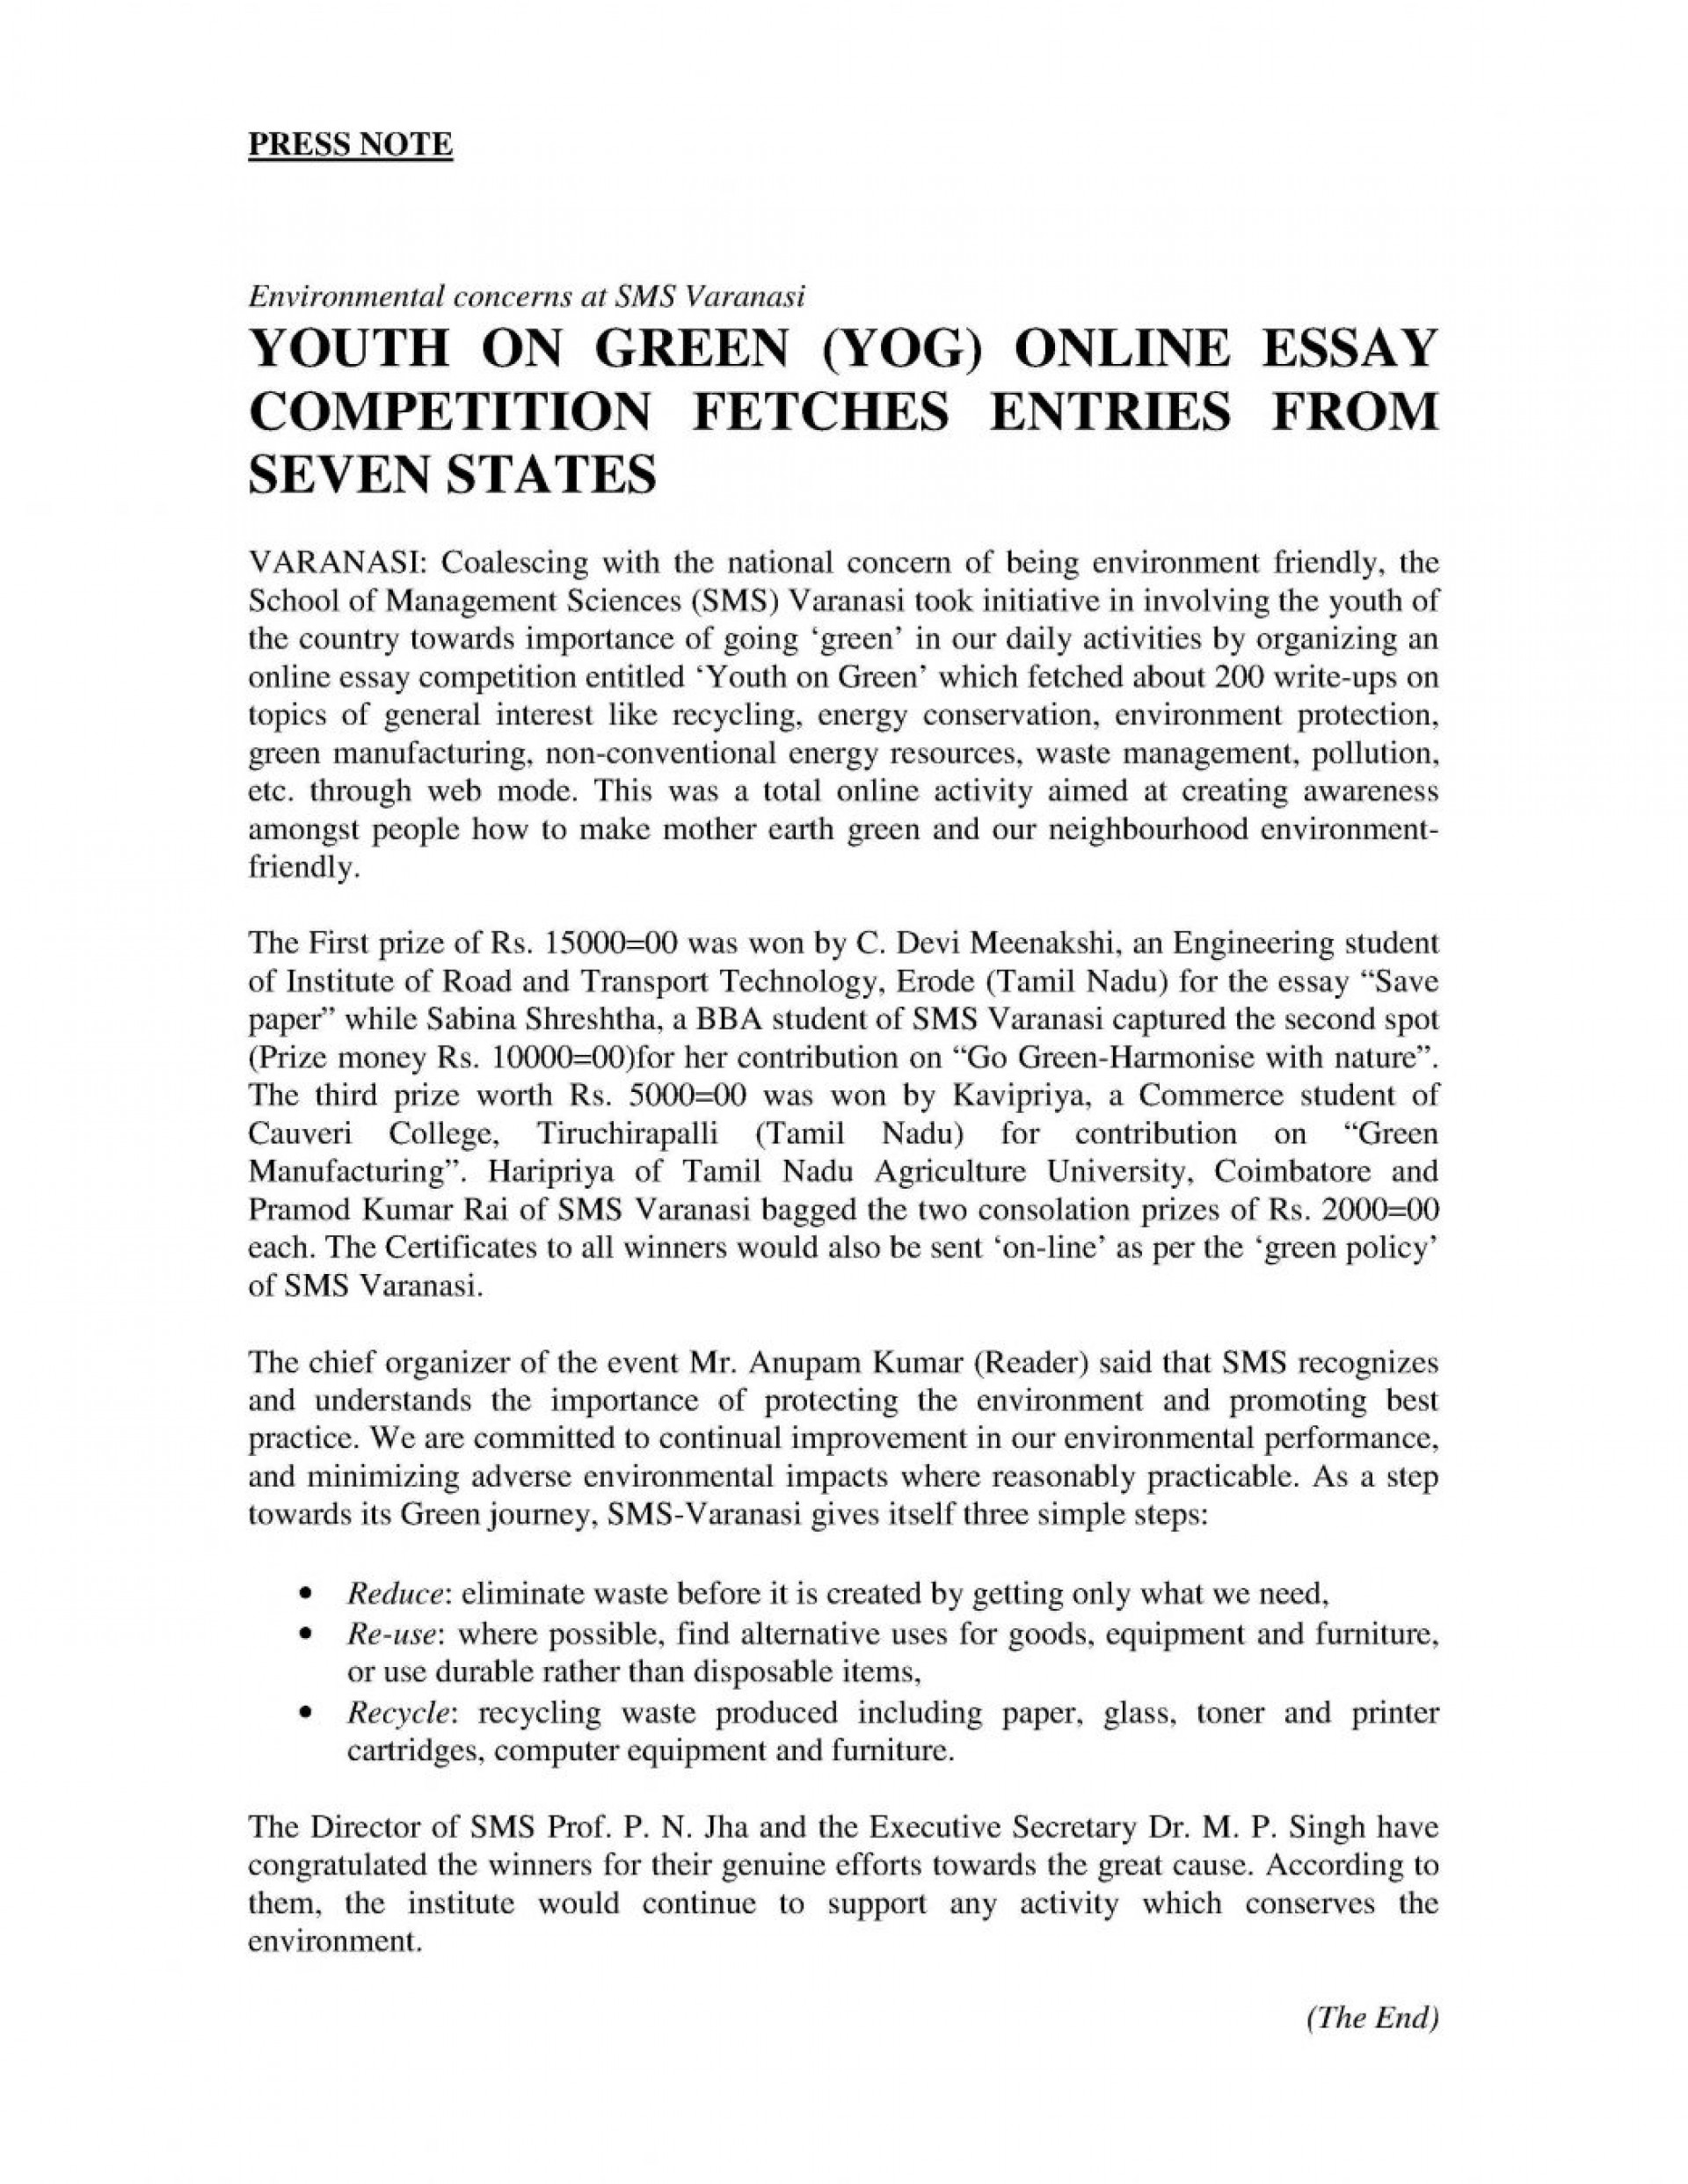 007 Environmental Protection Essay Example Essays On Good Habits Writing Skills Online Yog Press Re Bryant And Clark Canadian Book Process Styles Experience Stupendous In Tamil English Pdf Hindi 1920